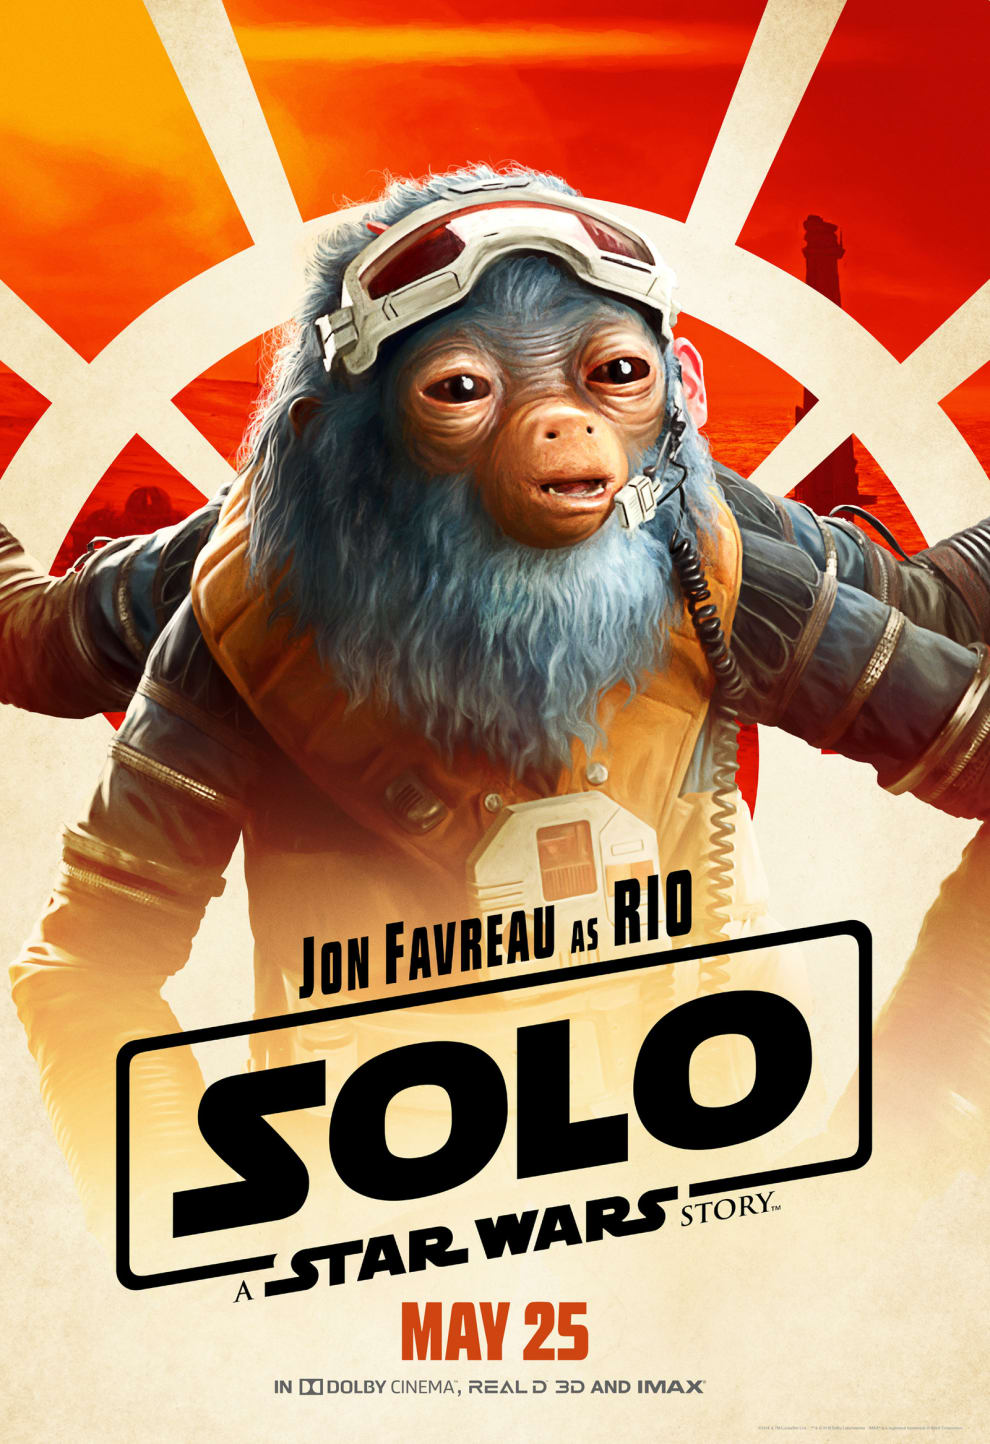 Solo: A Star Wars Story character posters!